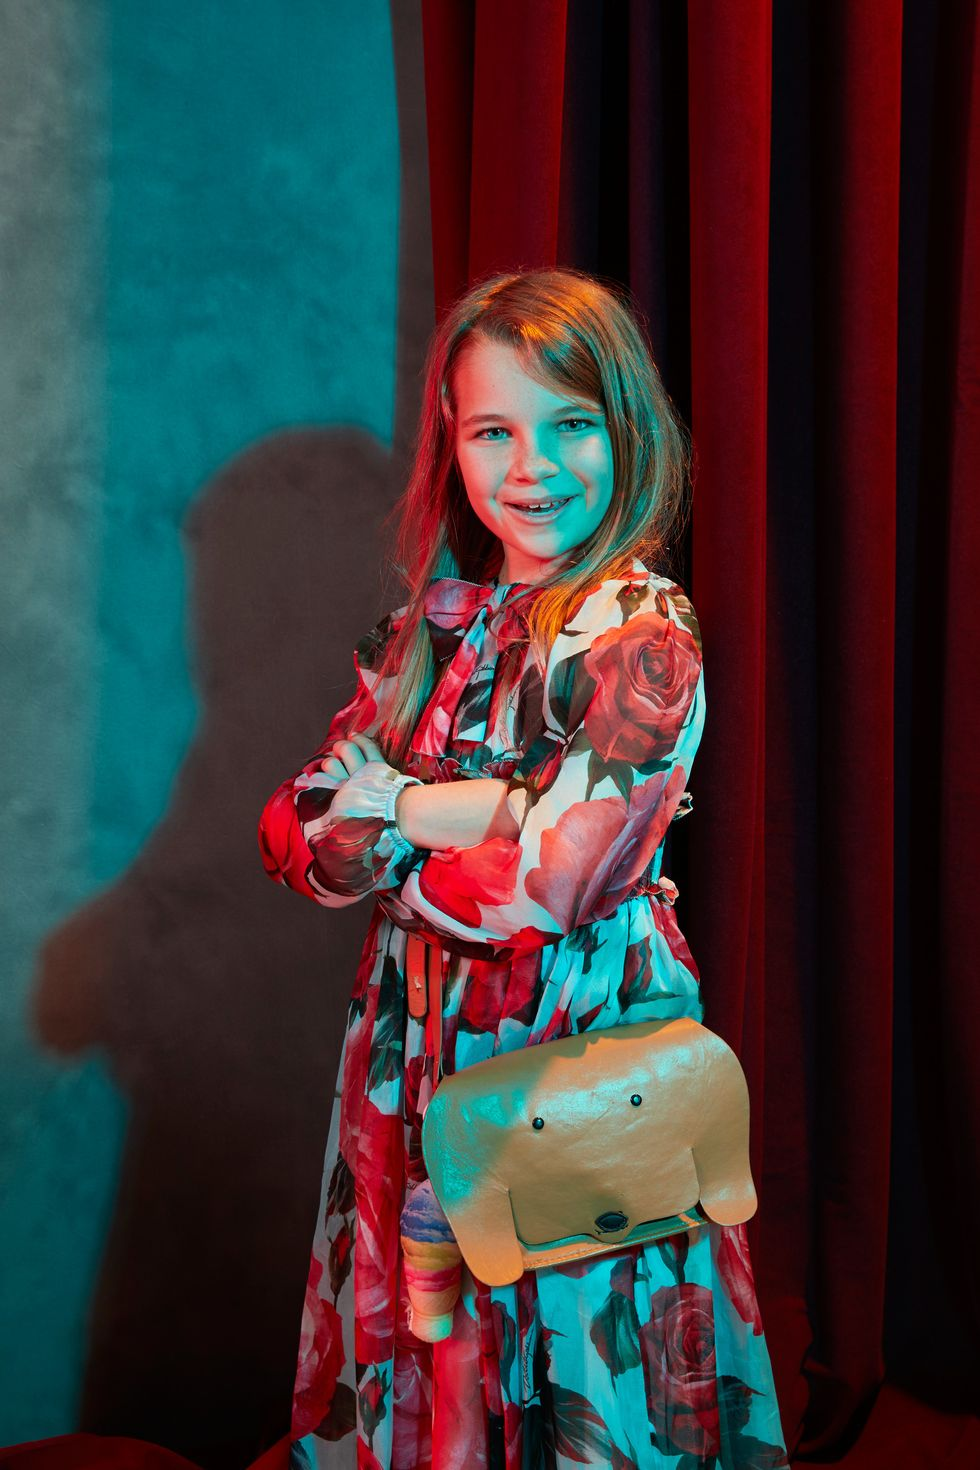 Actress Reagan Revord of TV show Young Sheldon.